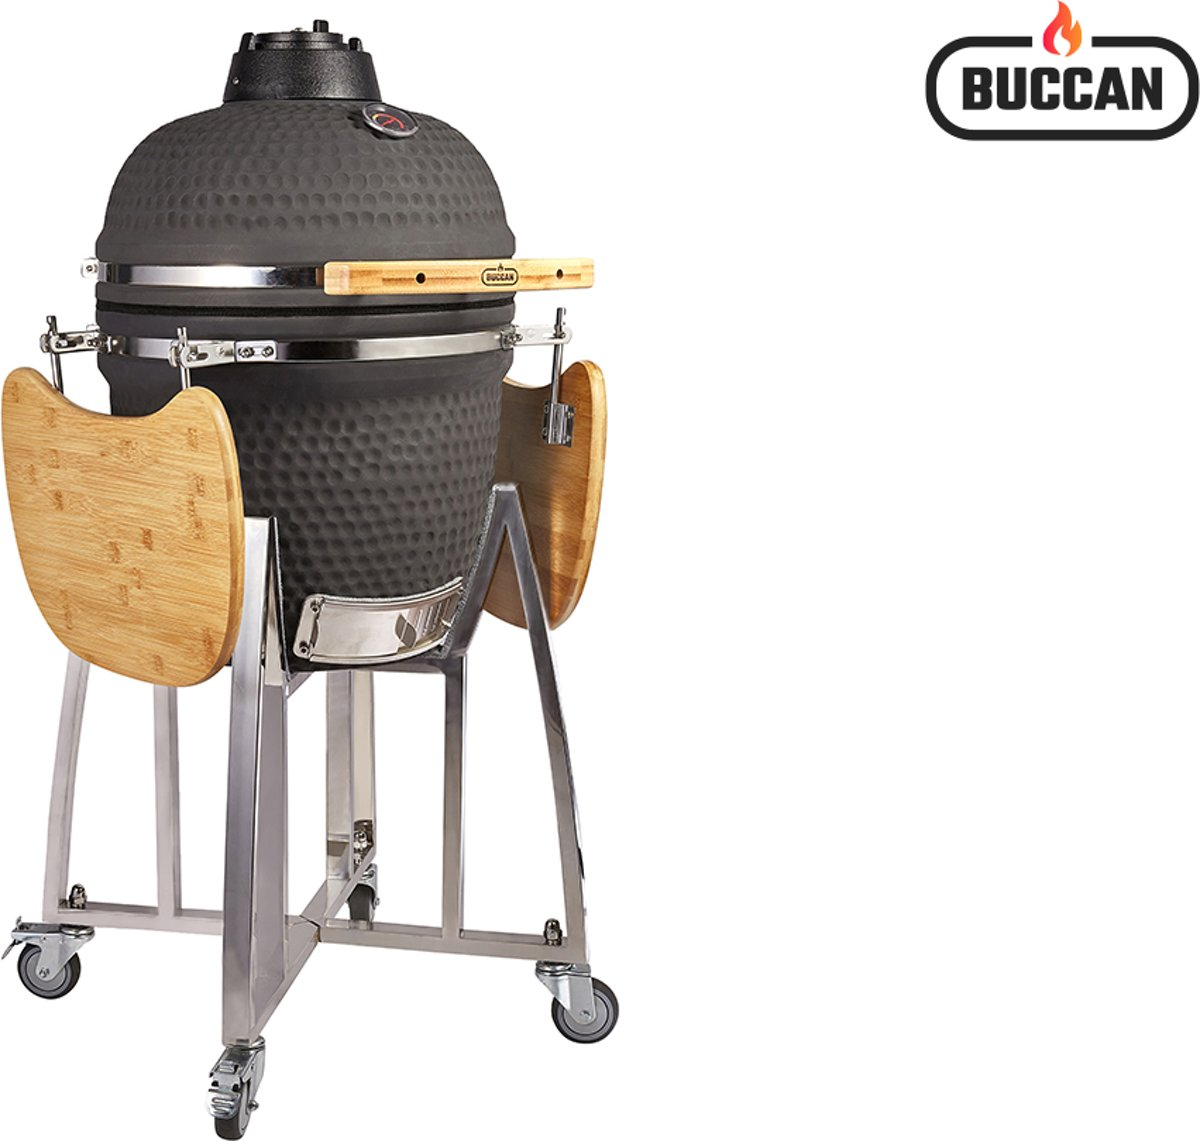 Buccan BBQ - Sunbury Smokey Egg - Large - Zwart